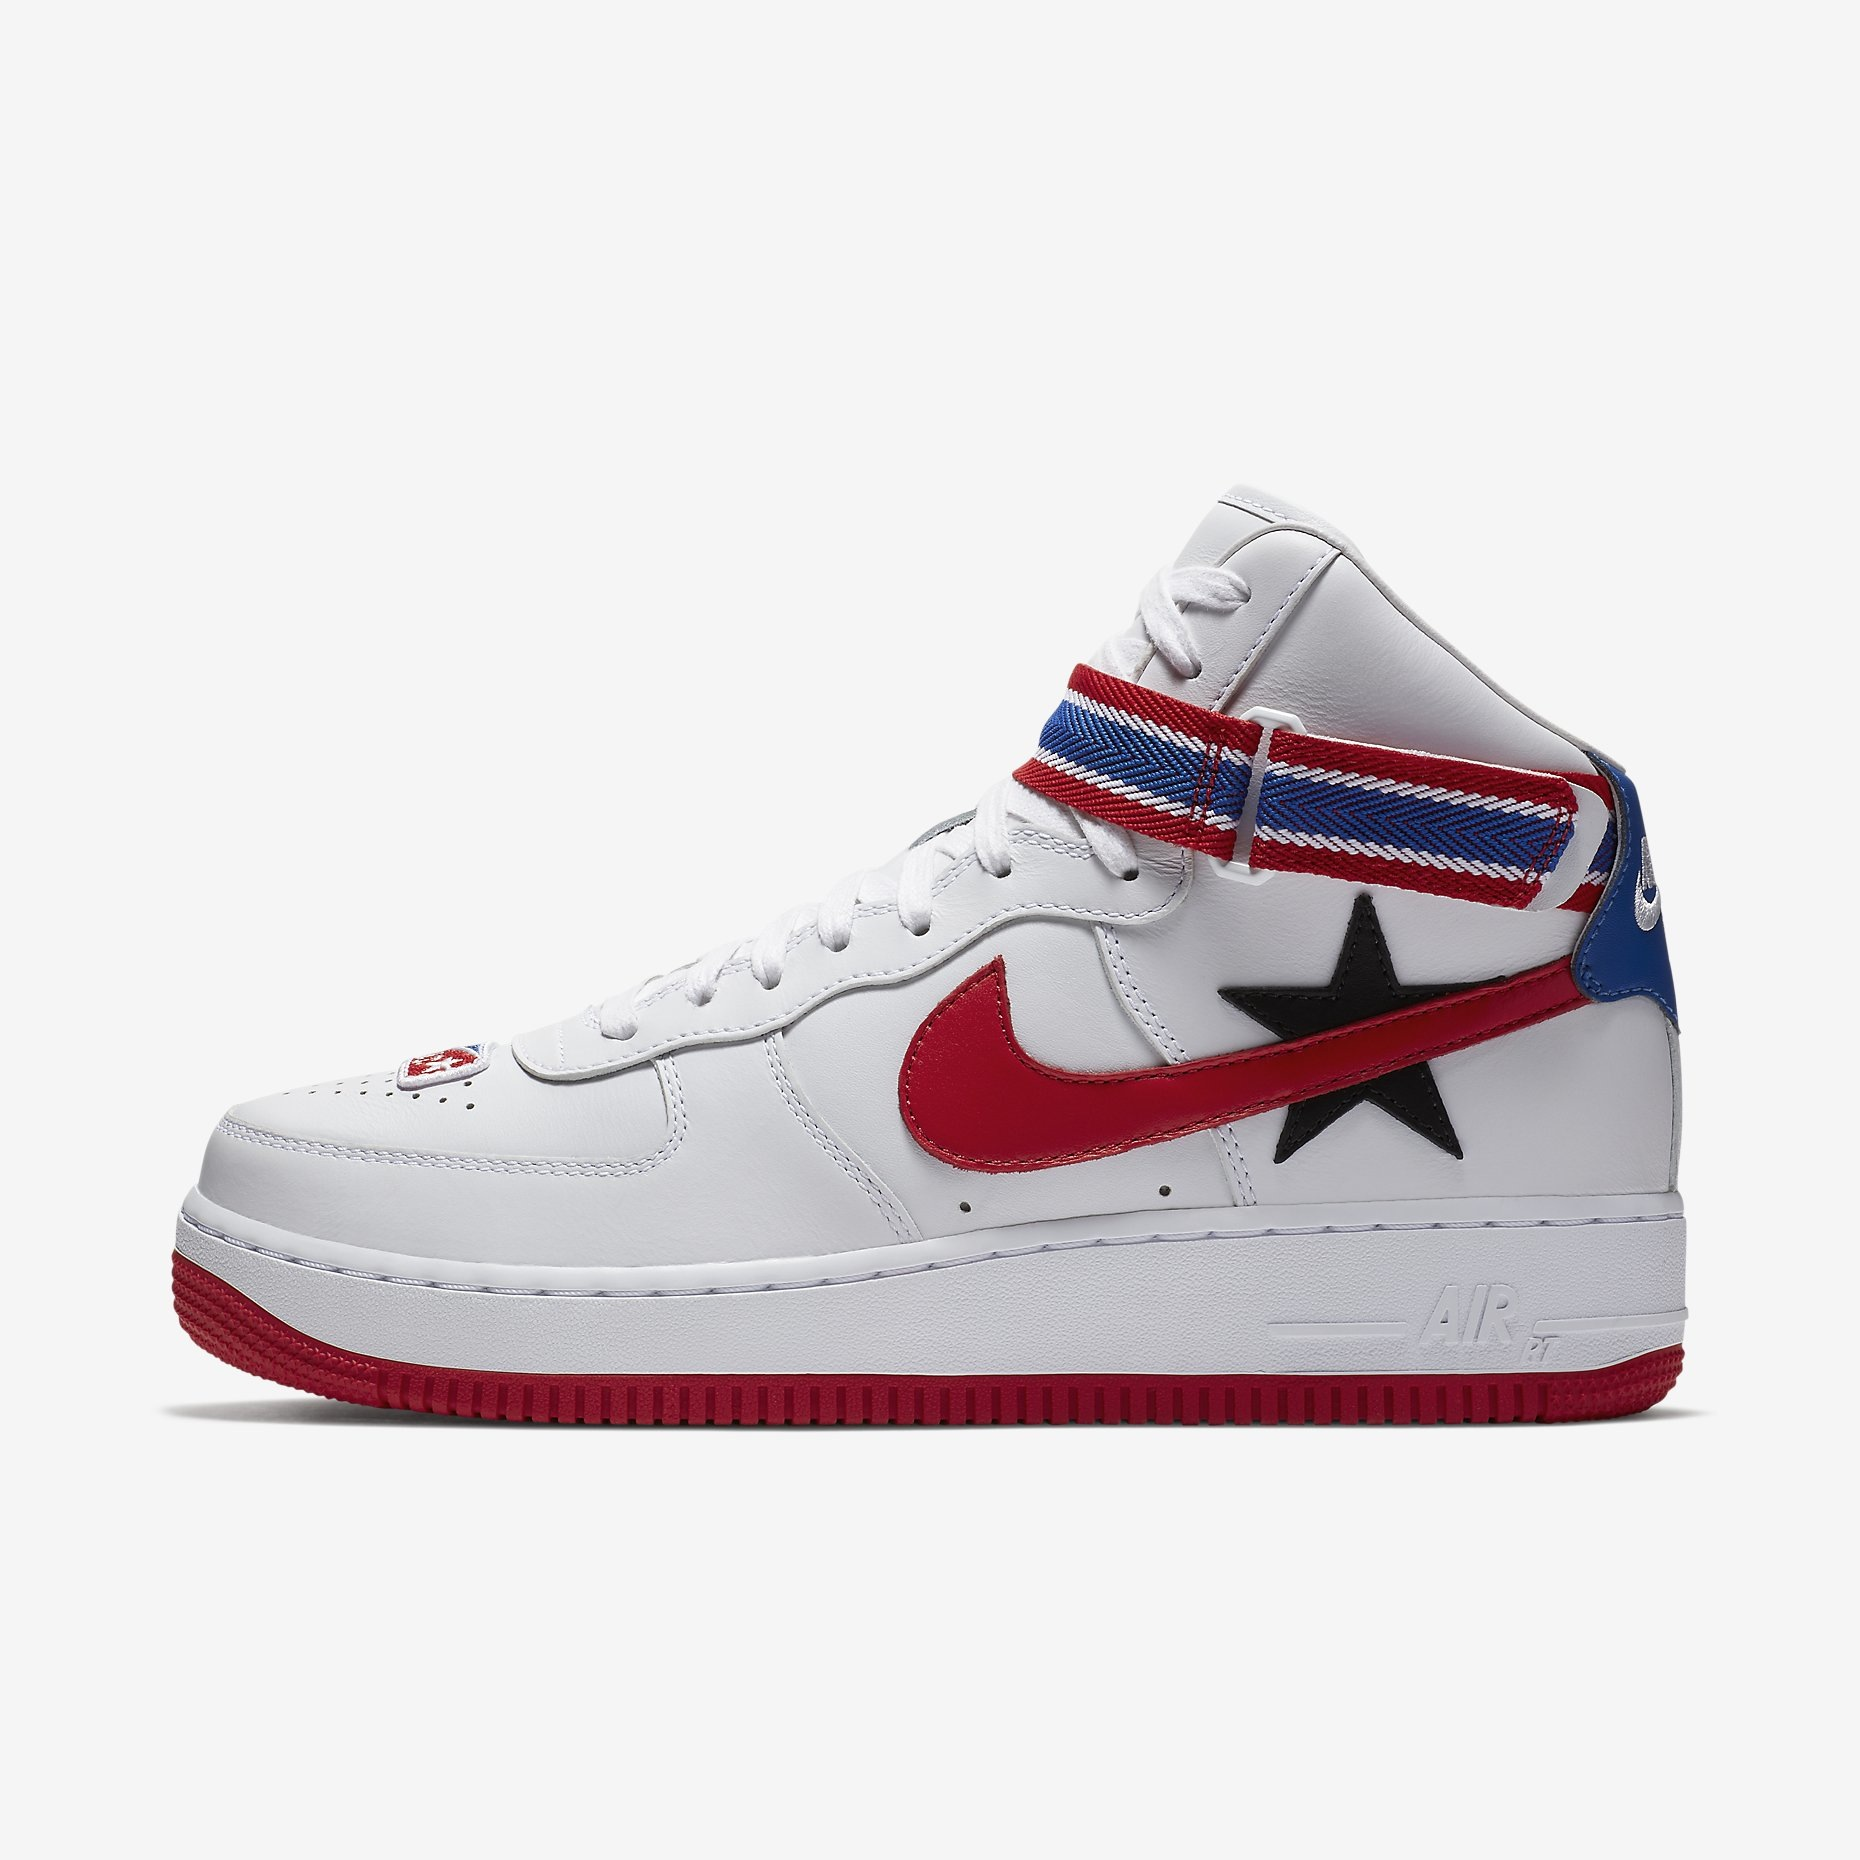 riccardo tisci x nike air force 1 high sneakers. Black Bedroom Furniture Sets. Home Design Ideas